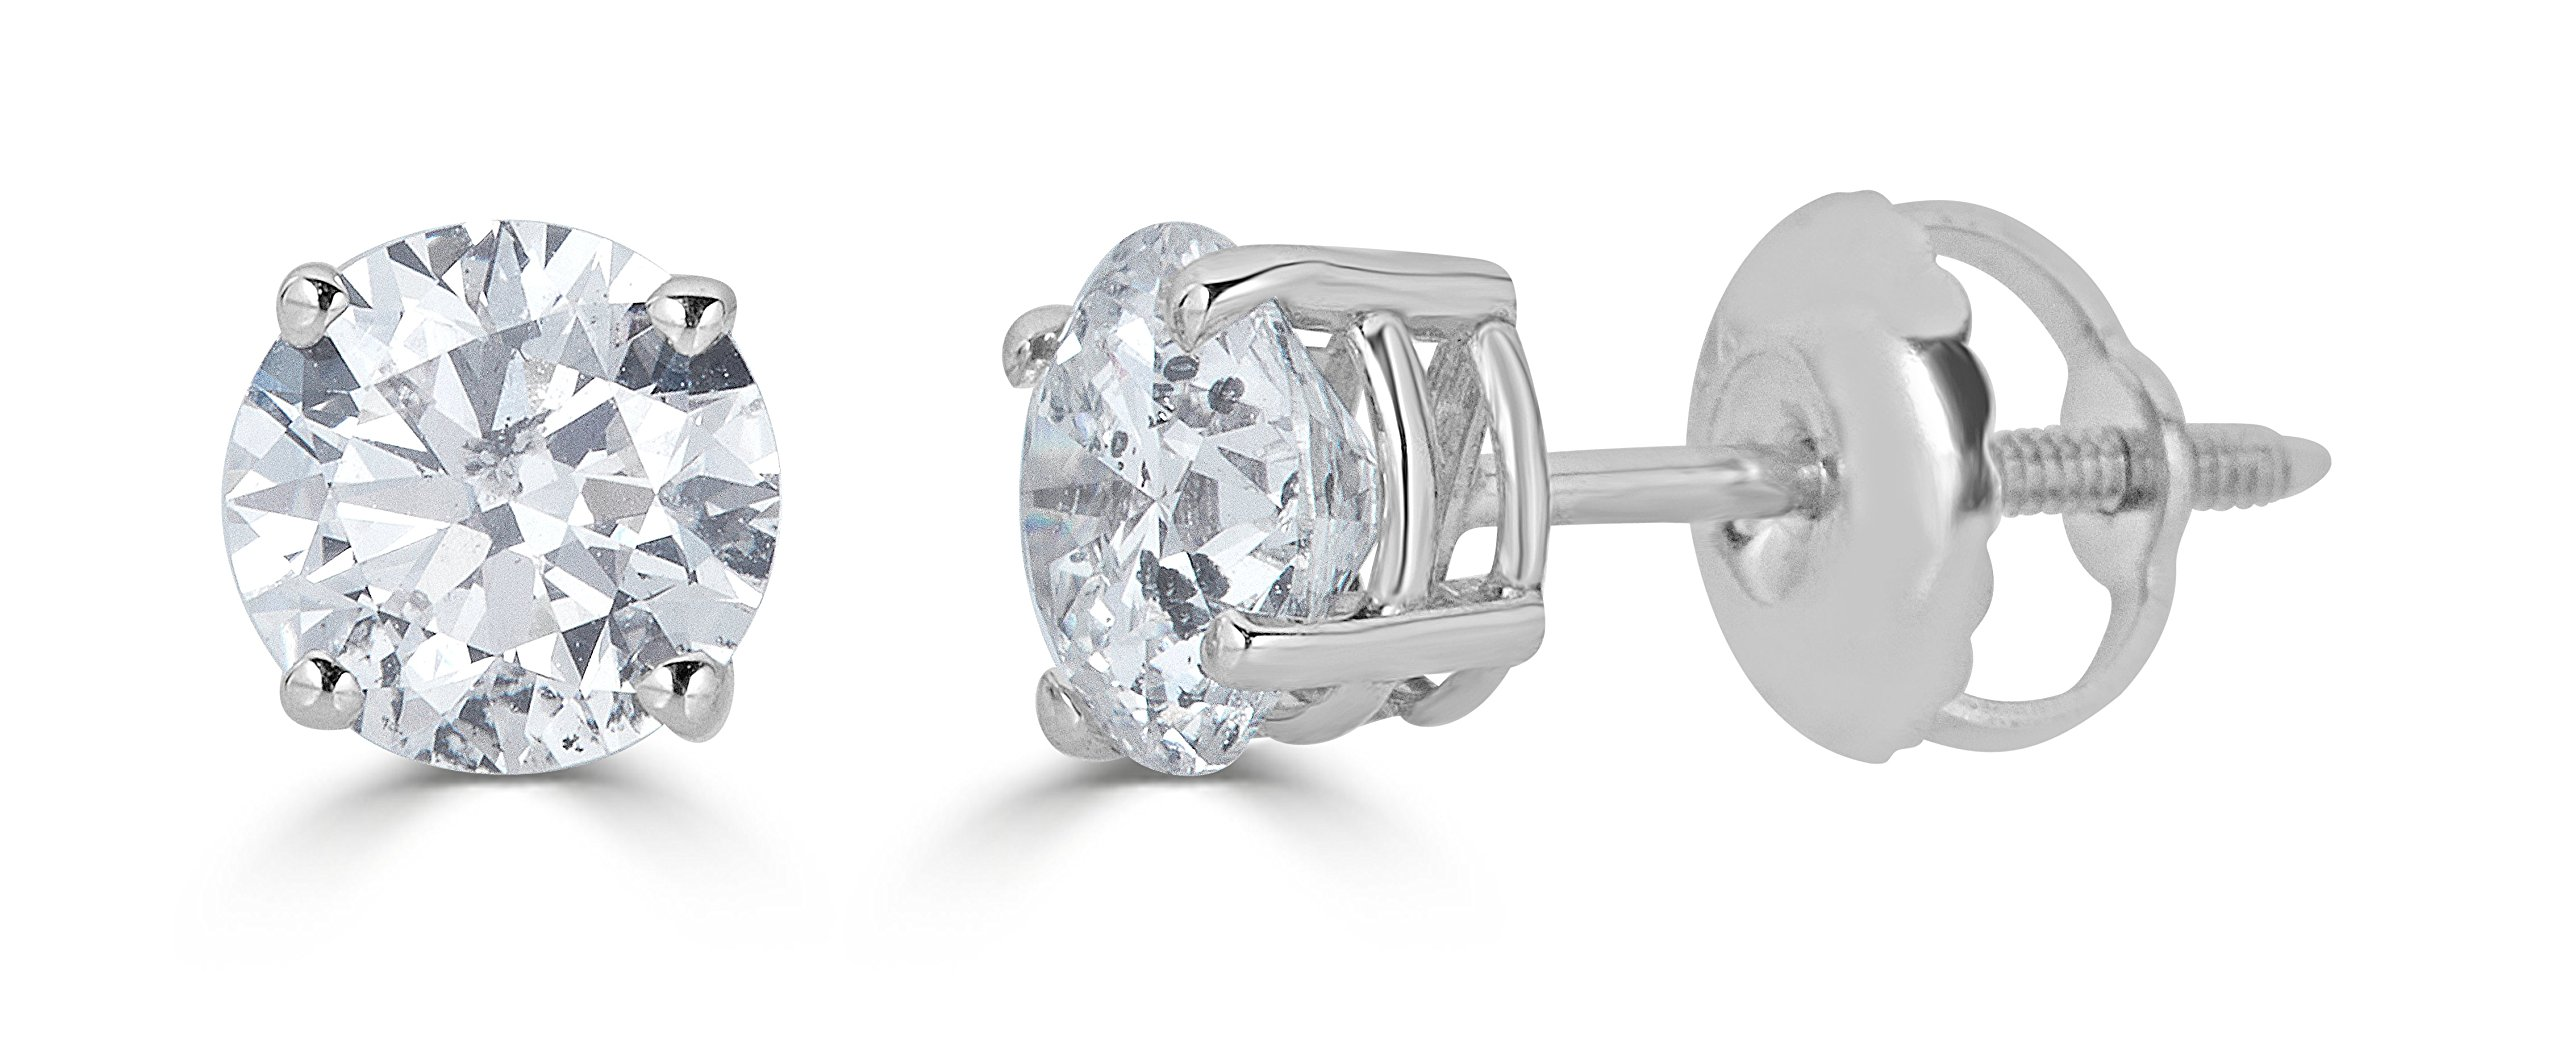 14k White Gold Round-Cut Diamond Stud Earrings (1/3cttw, J-K Color, I2-I3 Clarity) by Amazon Collection